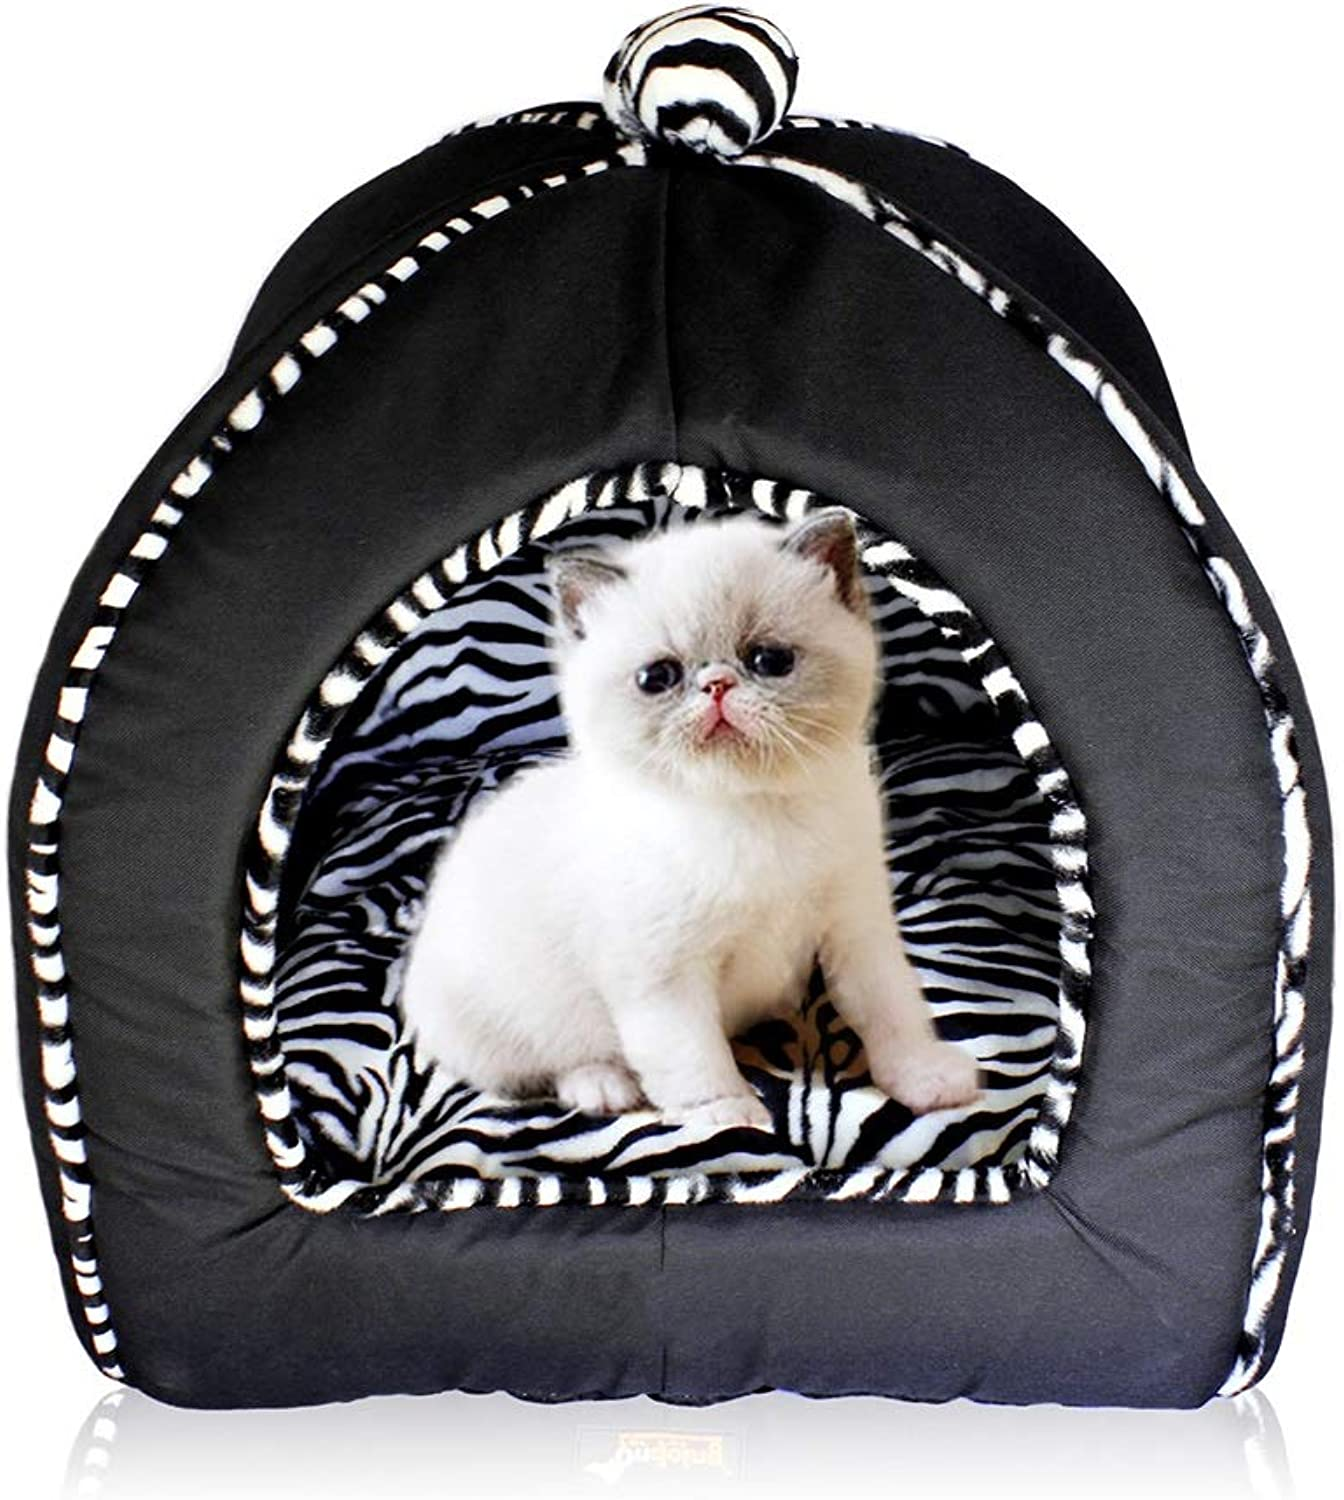 C_1X Cat Litter Kennel, Yurt Dog House, Cat Tent, Small Dog Kennel, Cat Bed, Pet Supplies, (33  32cm Black) (color   Black, Size   33  32cm)